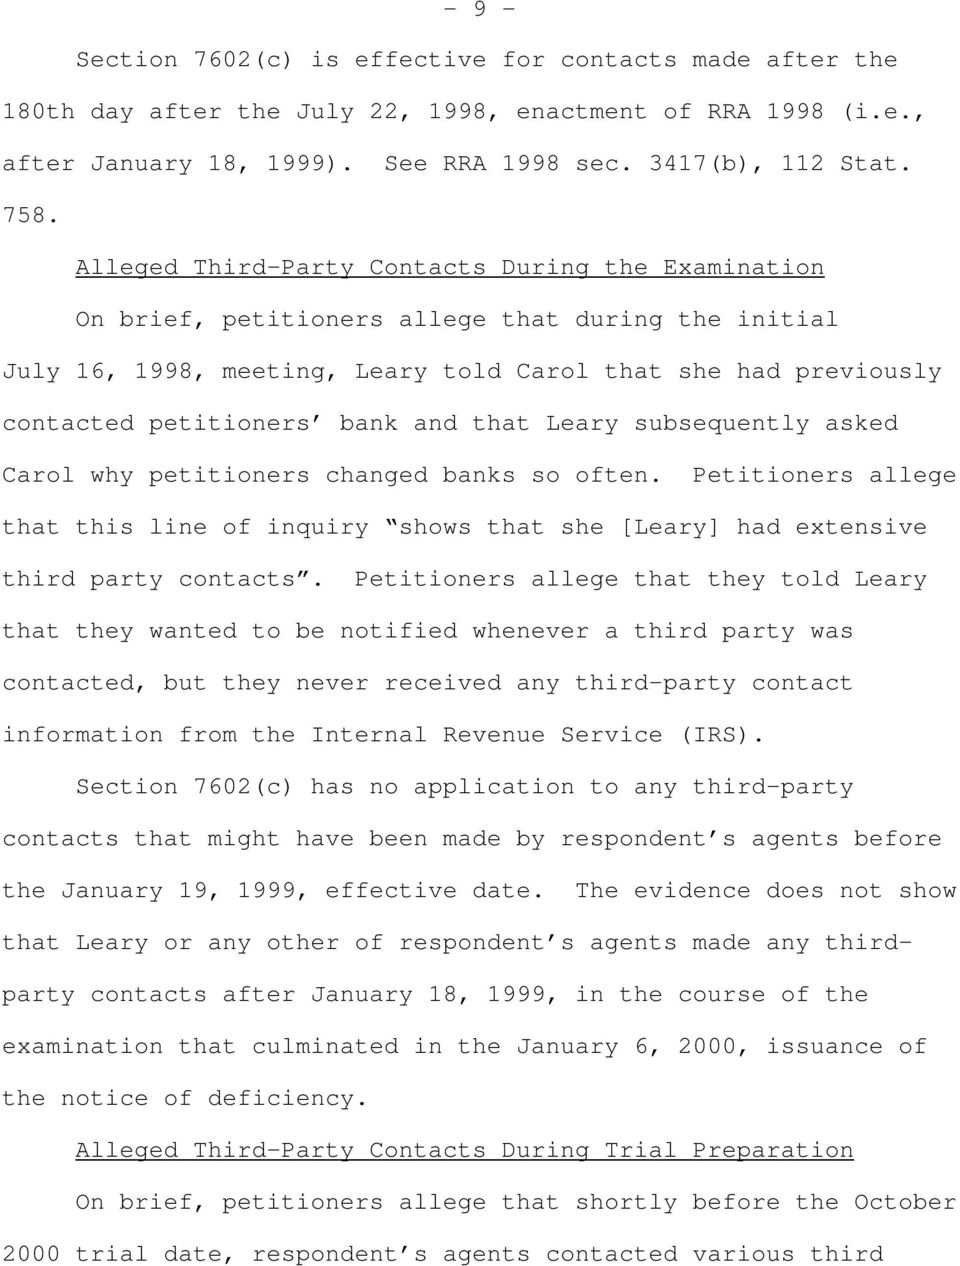 and that Leary subsequently asked Carol why petitioners changed banks so often. Petitioners allege that this line of inquiry shows that she [Leary] had extensive third party contacts.